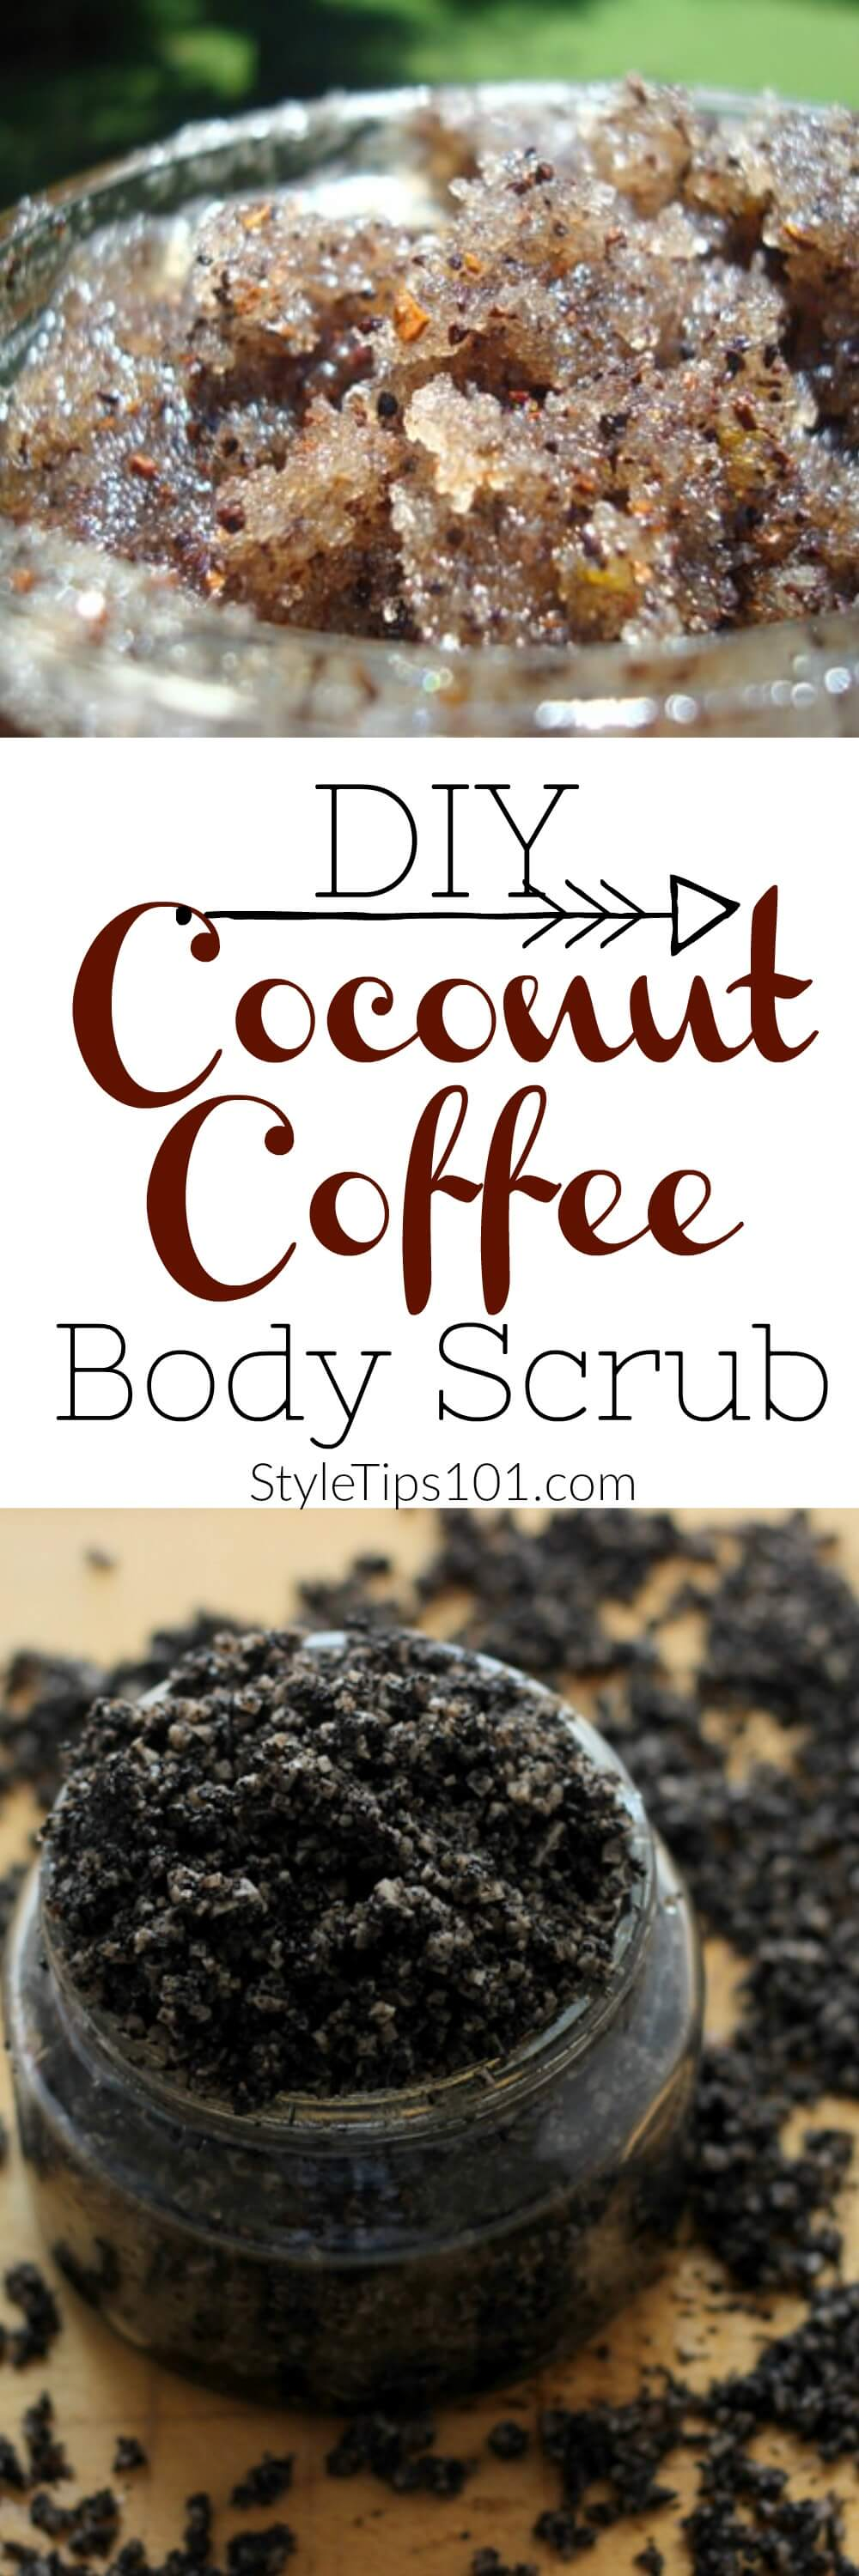 This coffee and coconut body scrub recipe uses all natural ingredients to give you a luxurious, but oh-so-cheap body scrub!